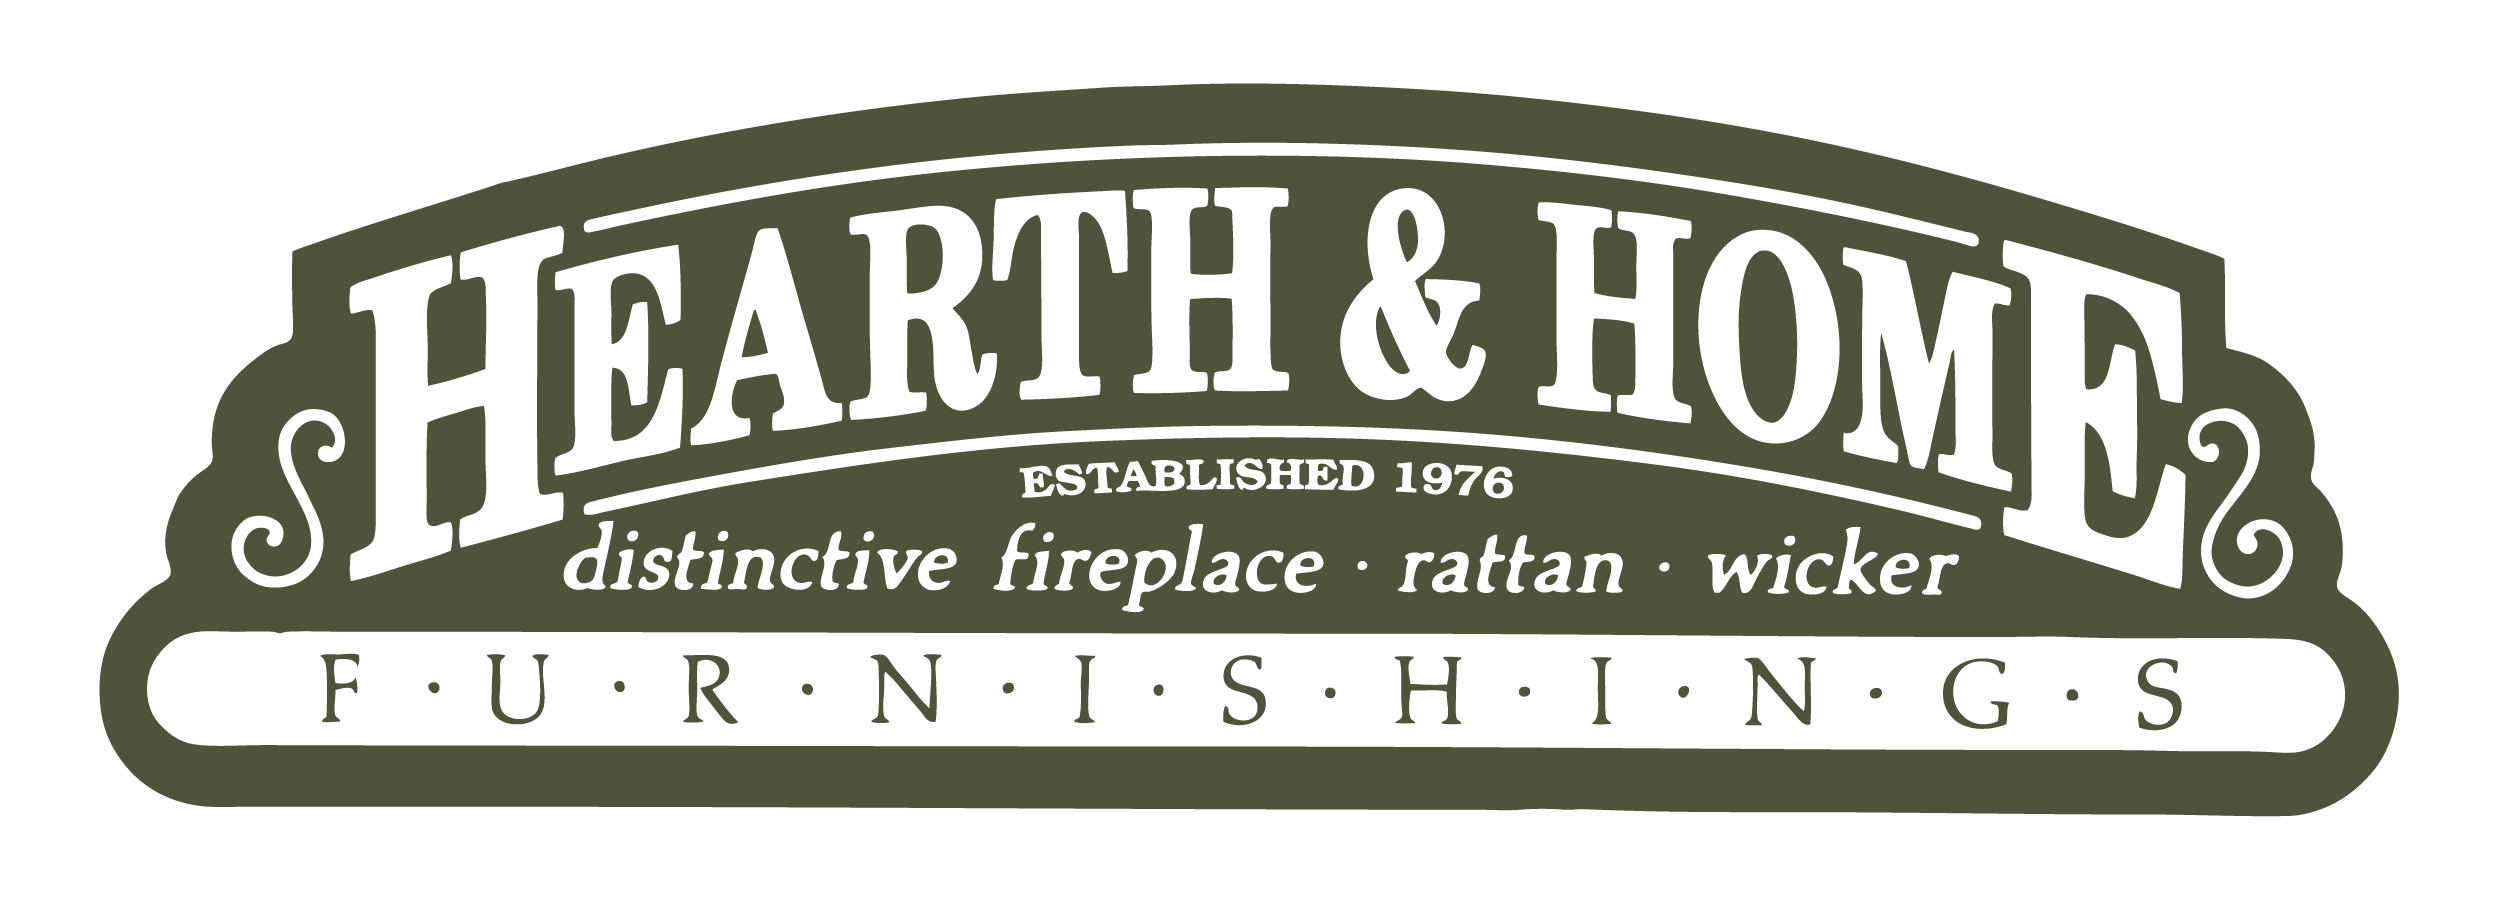 Home And Hearth Furniture Hearth Home Furnishings